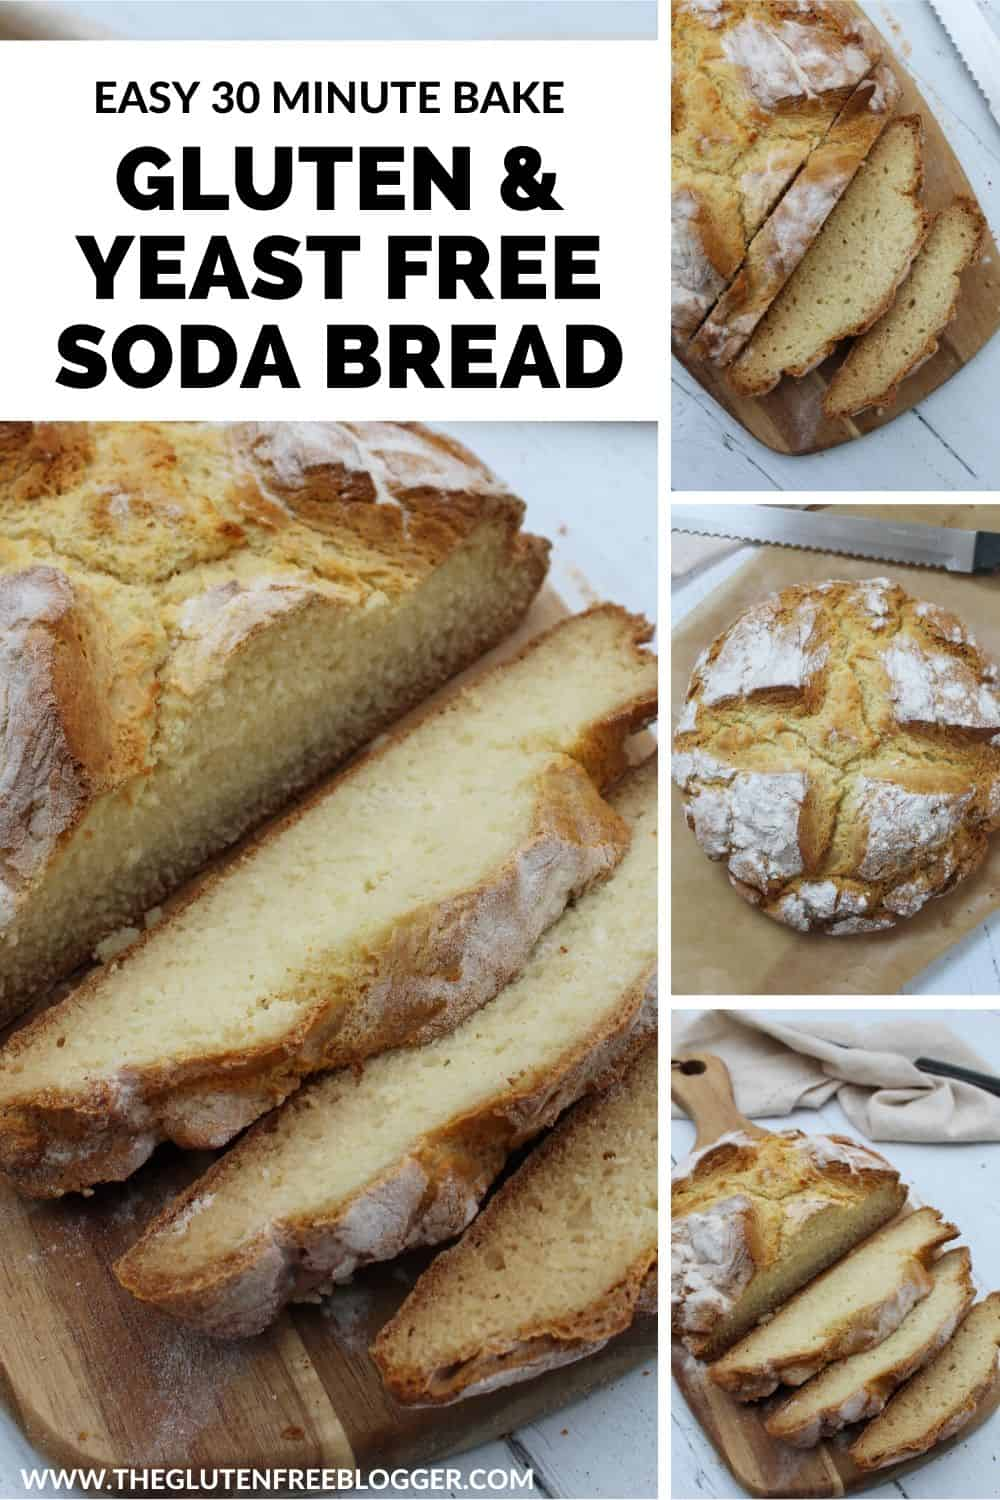 gluten free soda bread yeast free bread recipe easy baking at home (2)